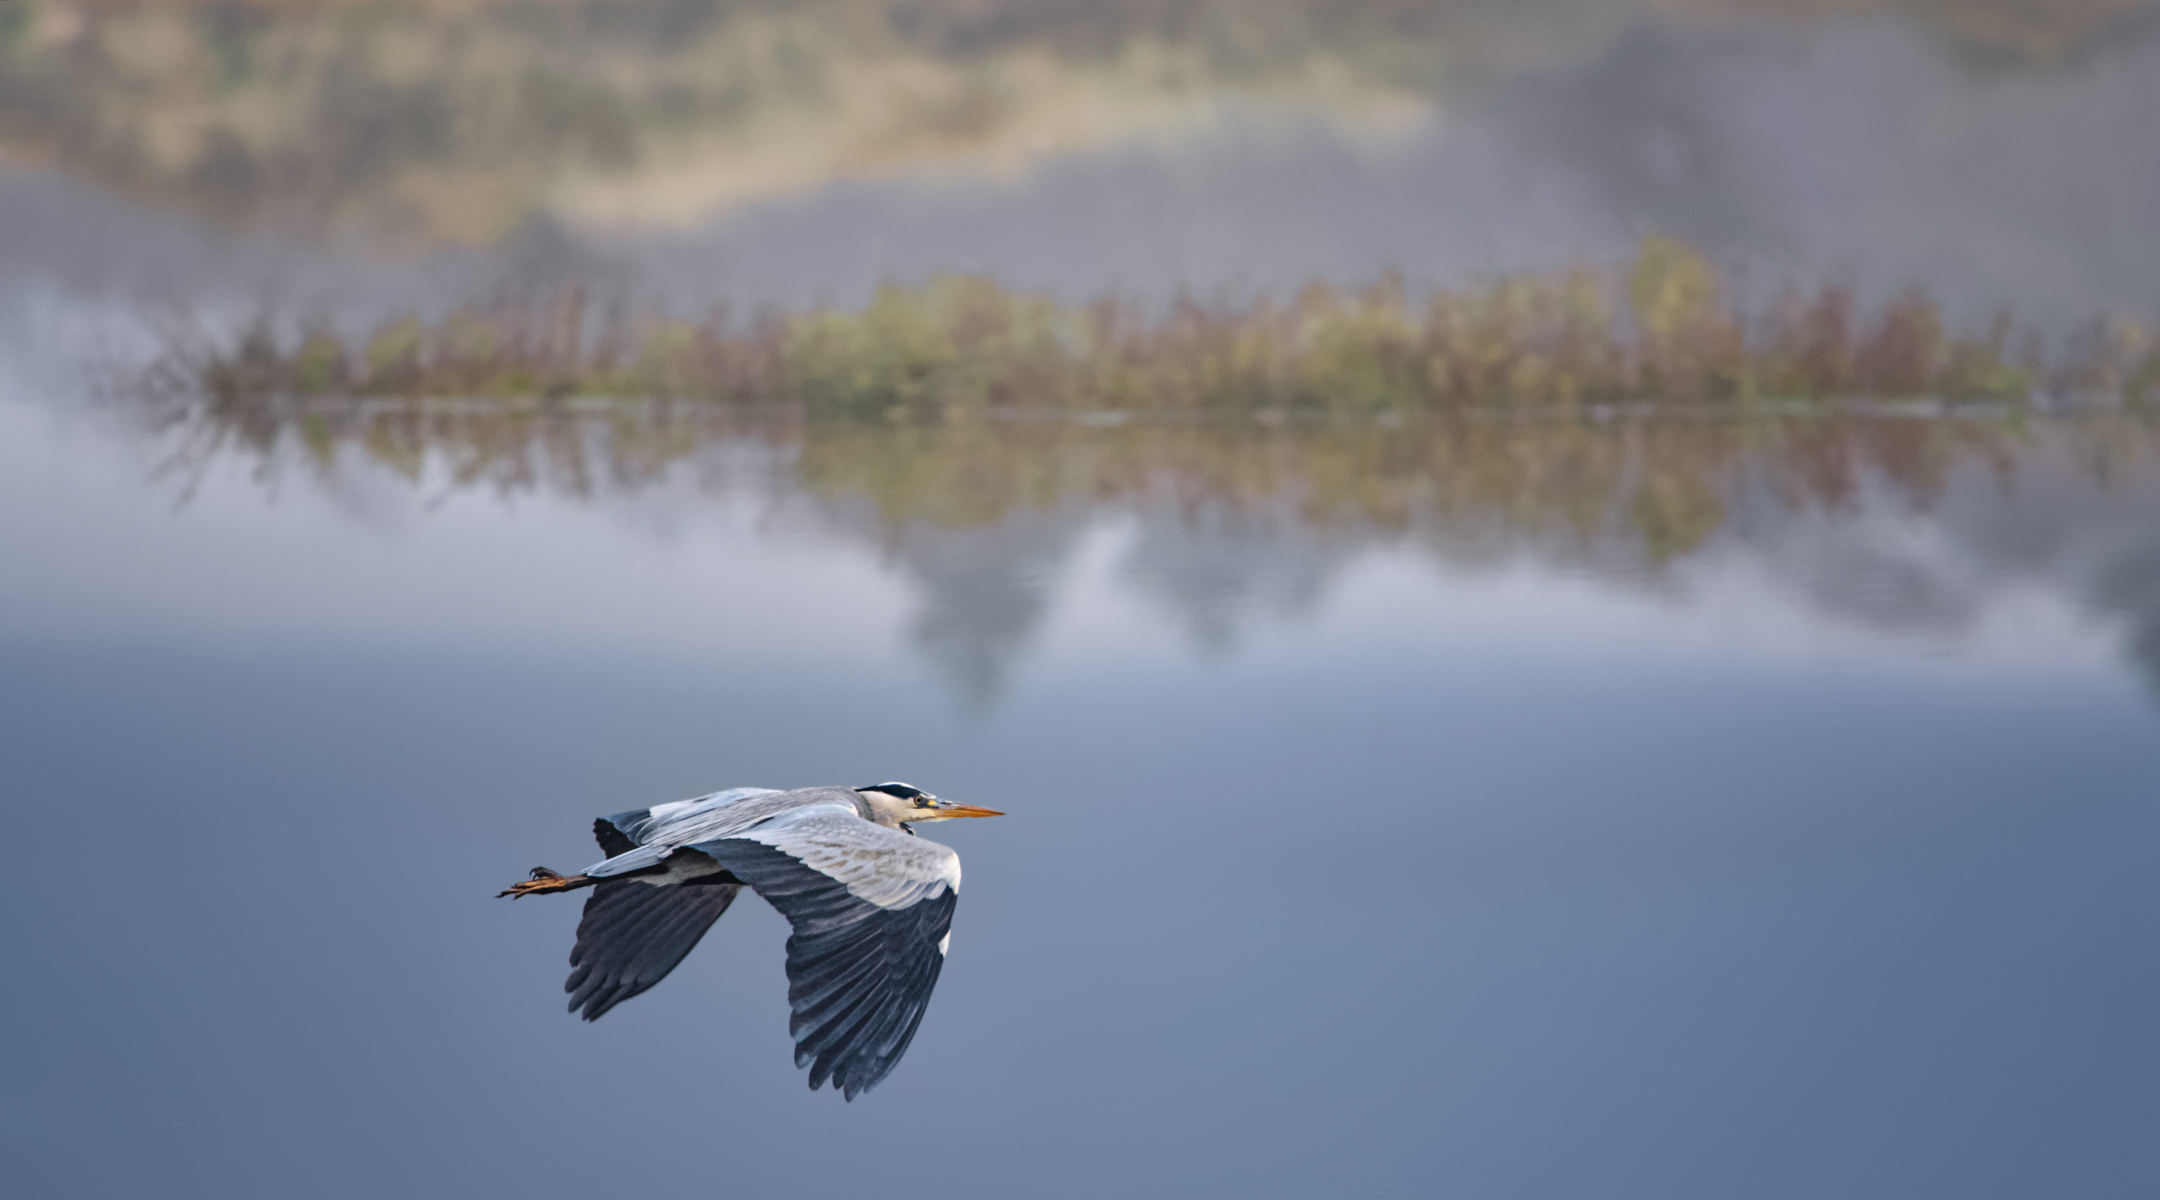 grey heron flying by over a tranquil pond